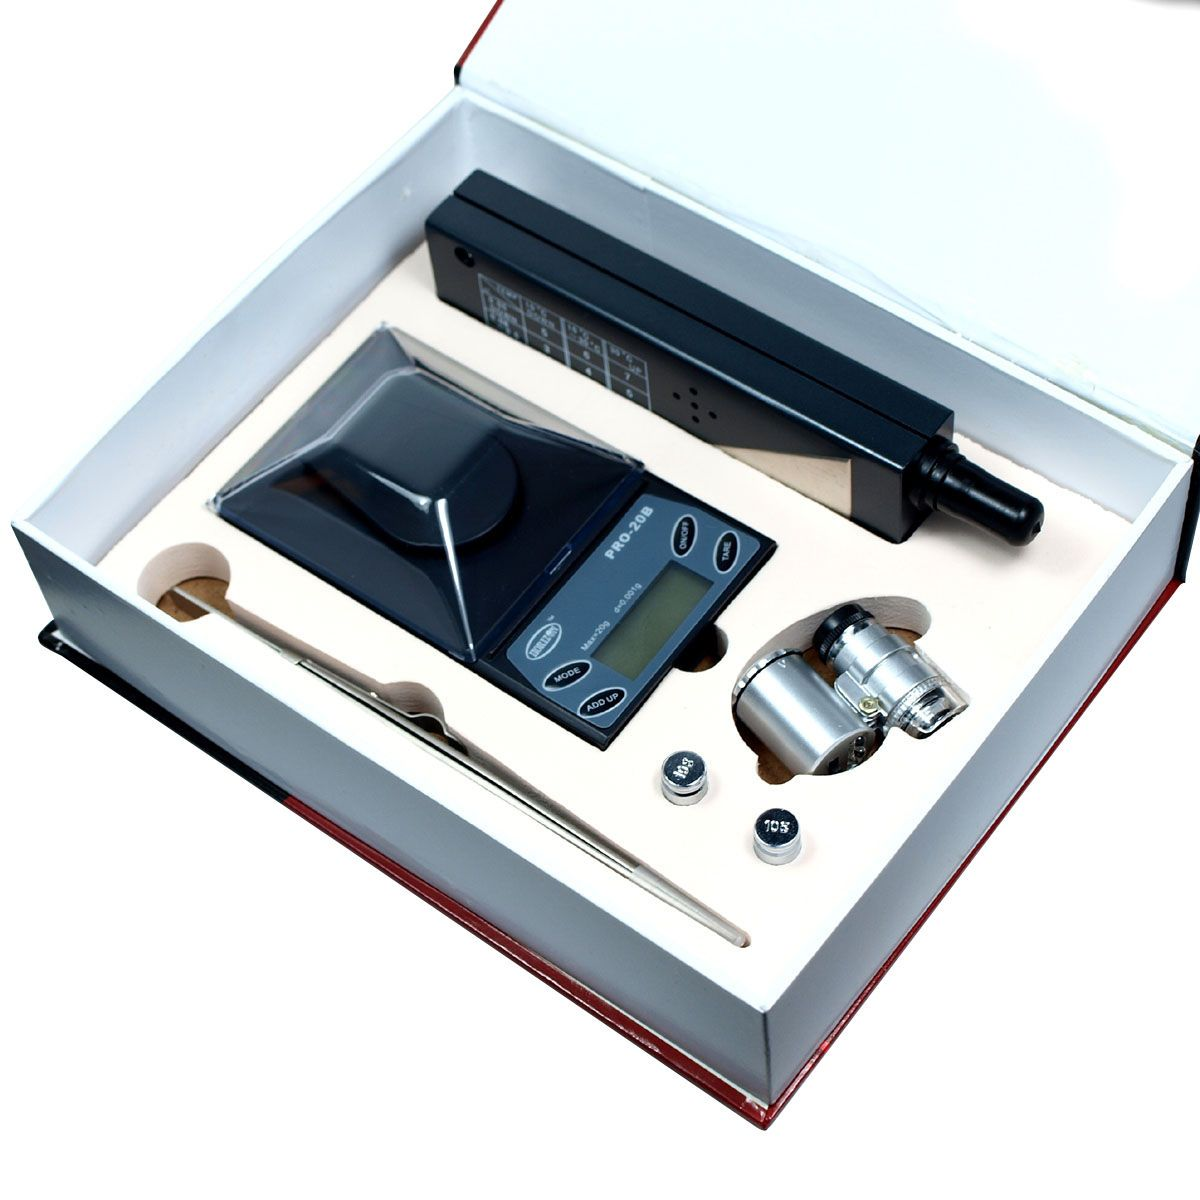 cool Jeweler diamond tool kit : 0.001g Digital Scale + Tester  + Loupe + Tweezers   Check more at http://harmonisproduction.com/jeweler-diamond-tool-kit-0-001g-digital-scale-tester-loupe-tweezers/